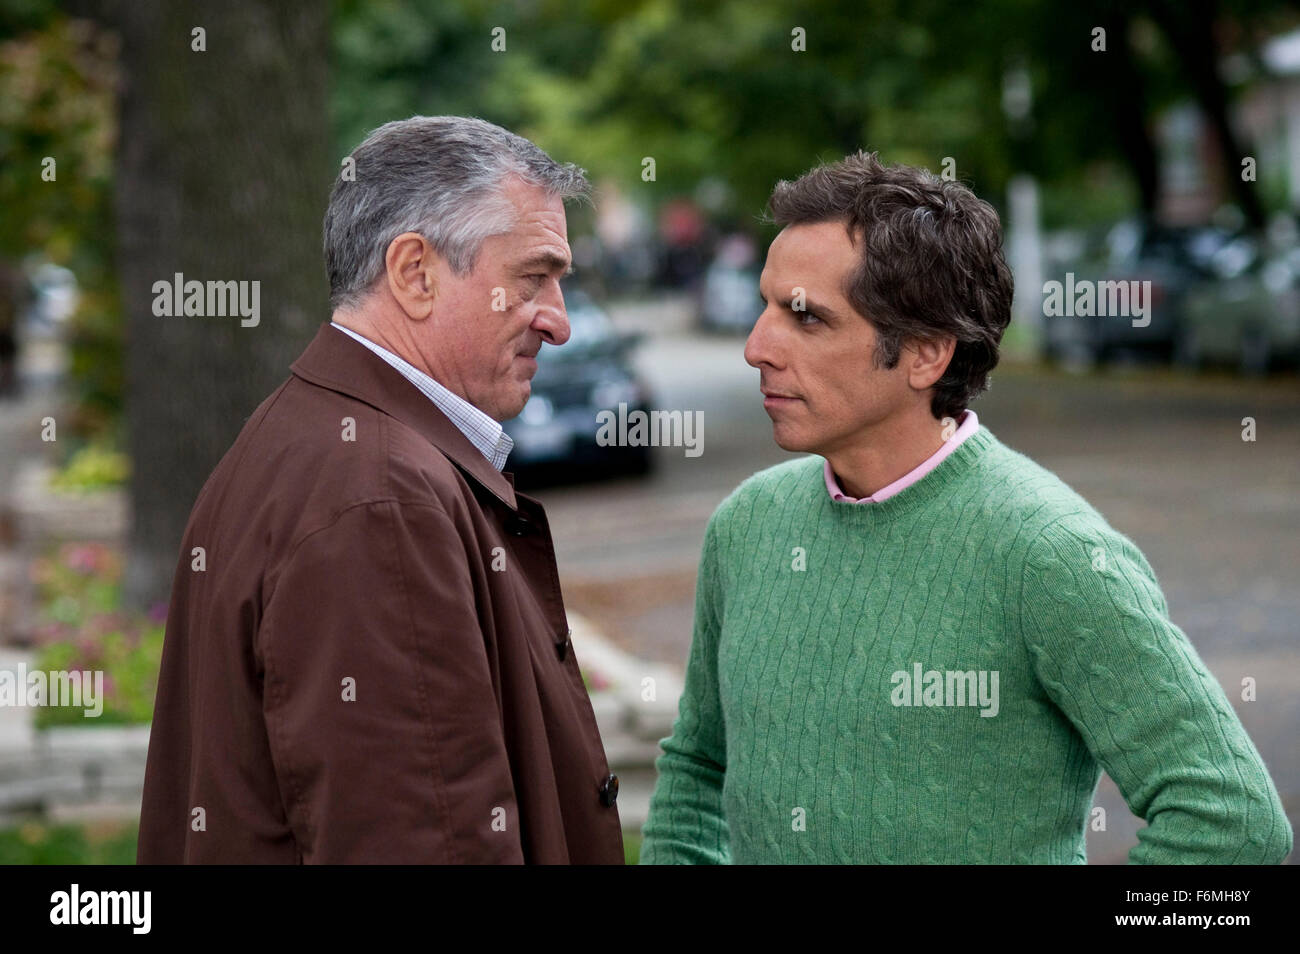 RELEASE DATE: July 30, 2010. MOVIE TITLE: Meet the Fockers Sequel. STUDIO: Universal Pictures. PLOT: The Focker - Stock Image